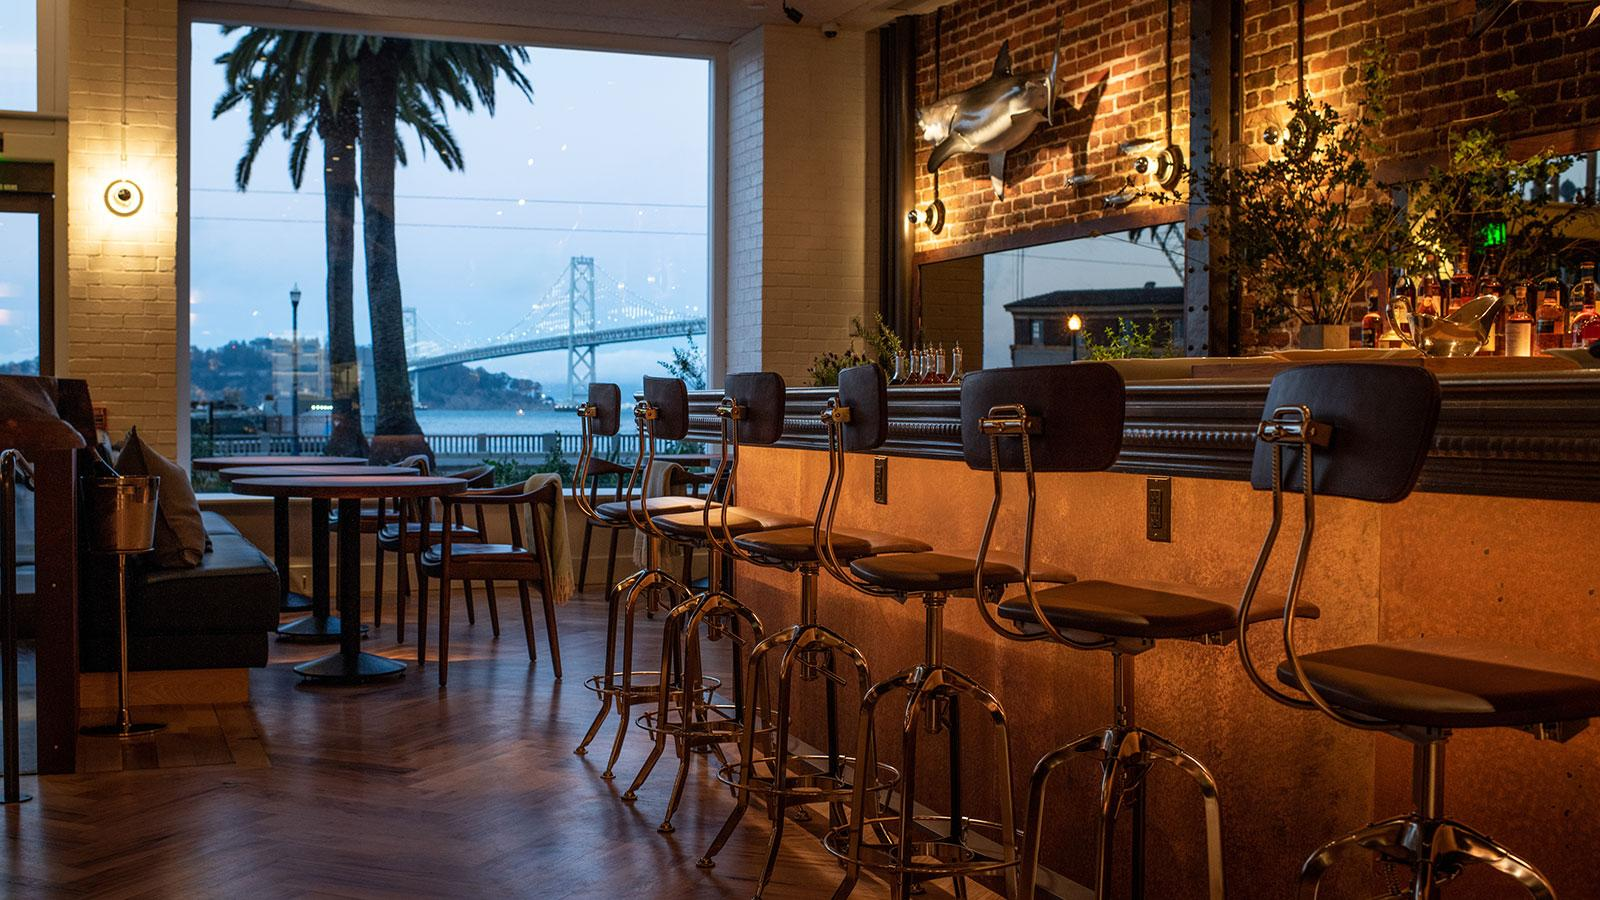 A seat at the bar includes a view of the Bay Bridge.